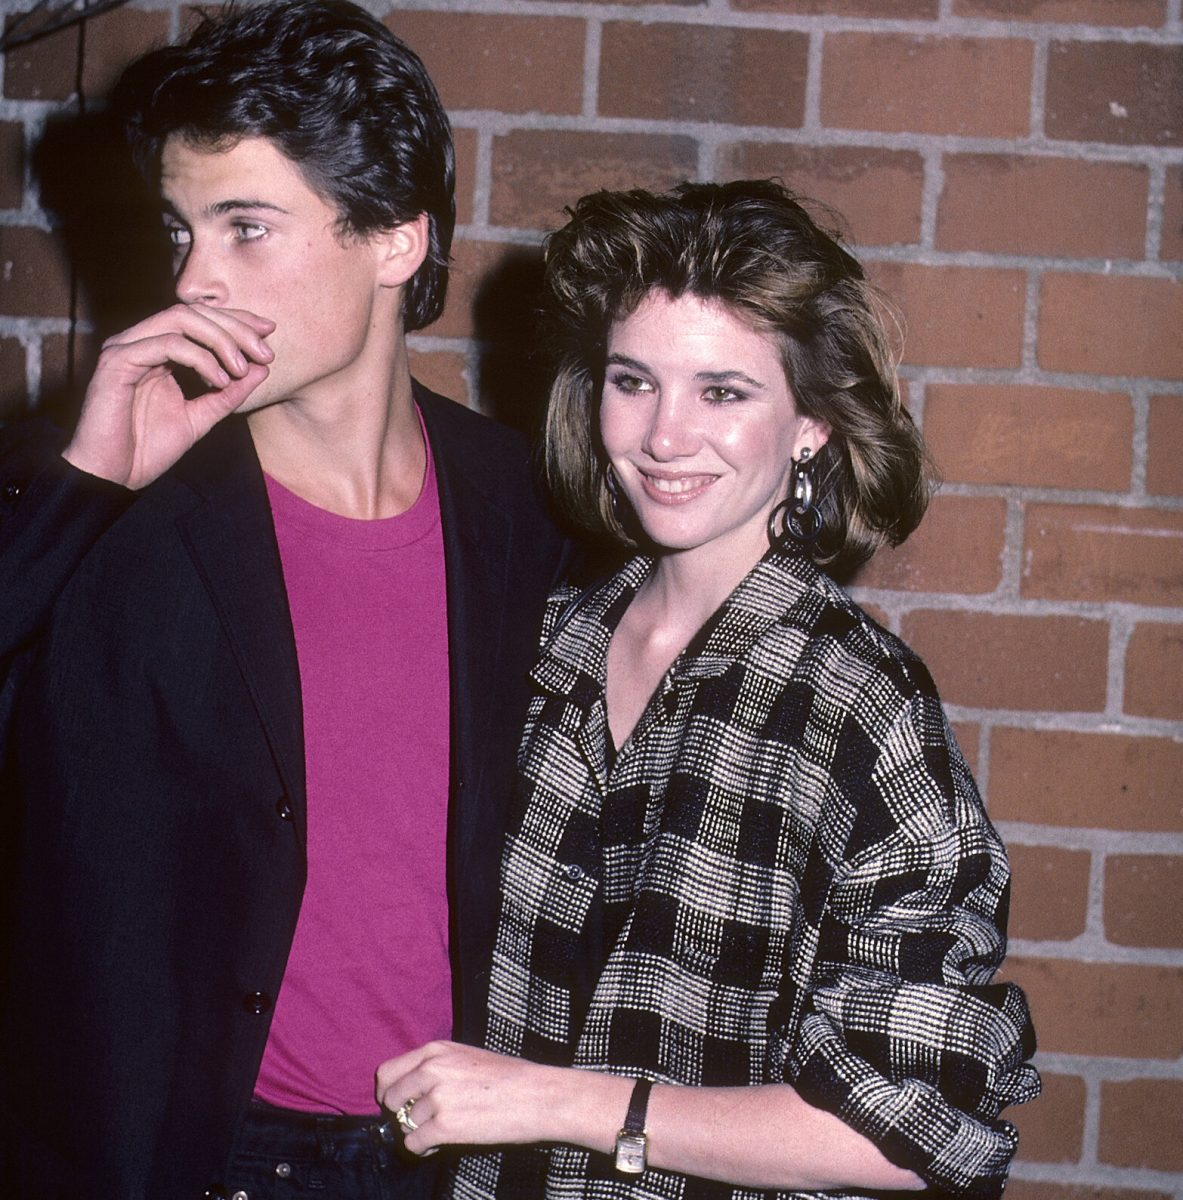 """Rob Lowe and Melissa Gilbert at """"The Hotel New Hampshire"""" West Hollywood Premiere on March 1, 1984"""